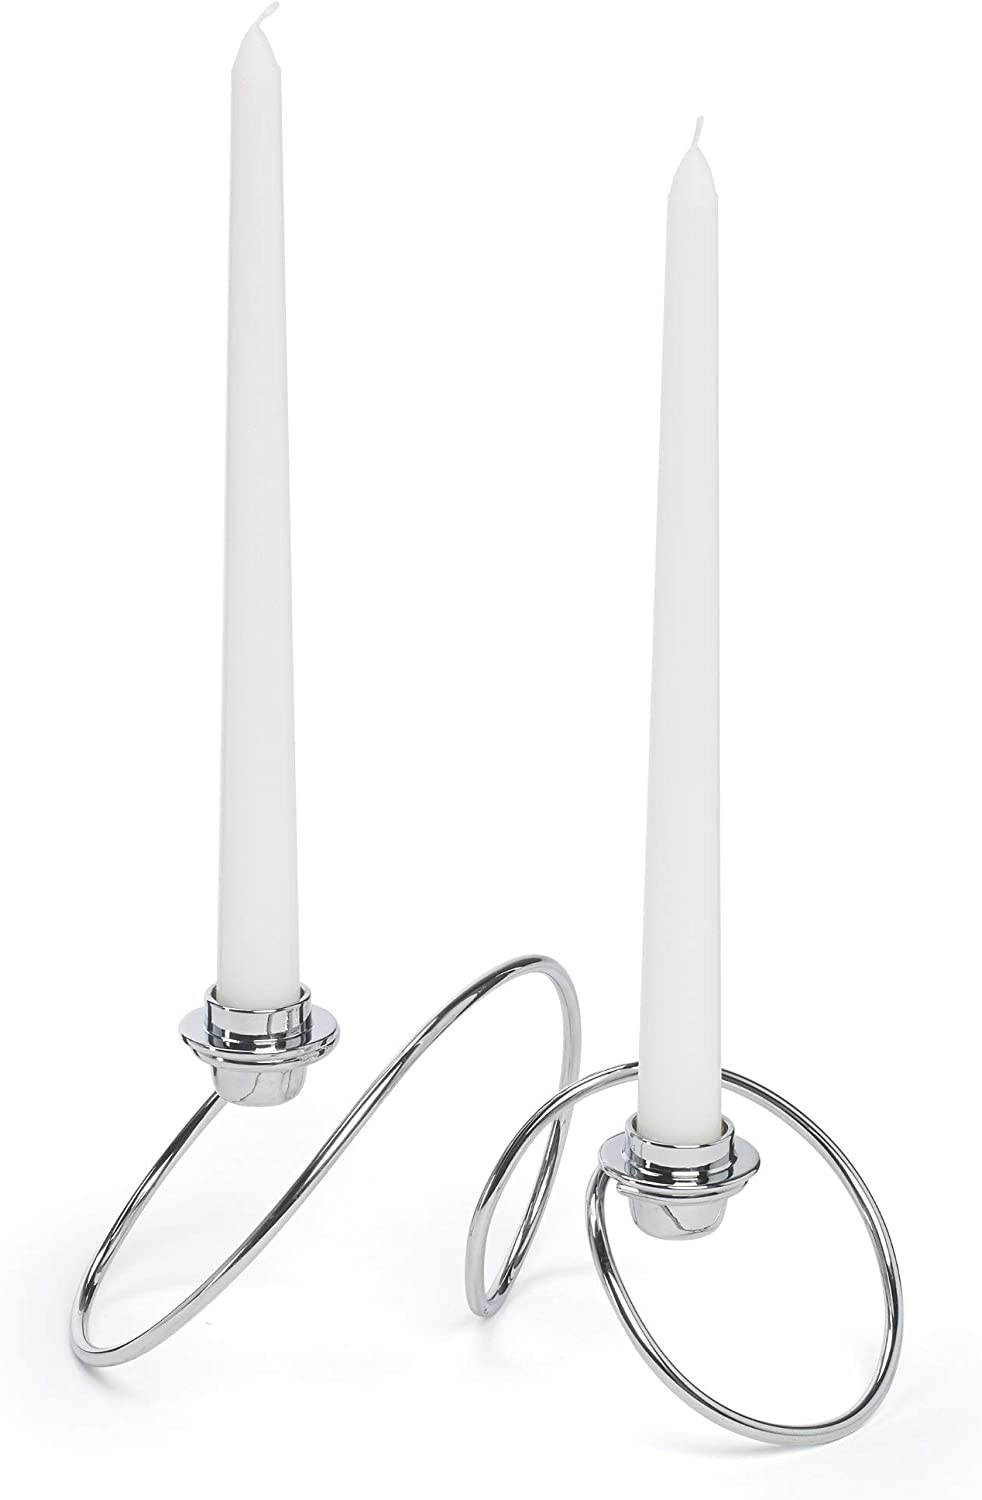 Silver Candlesticks Chrome Dinner Table Taper Candles Contemporary Design